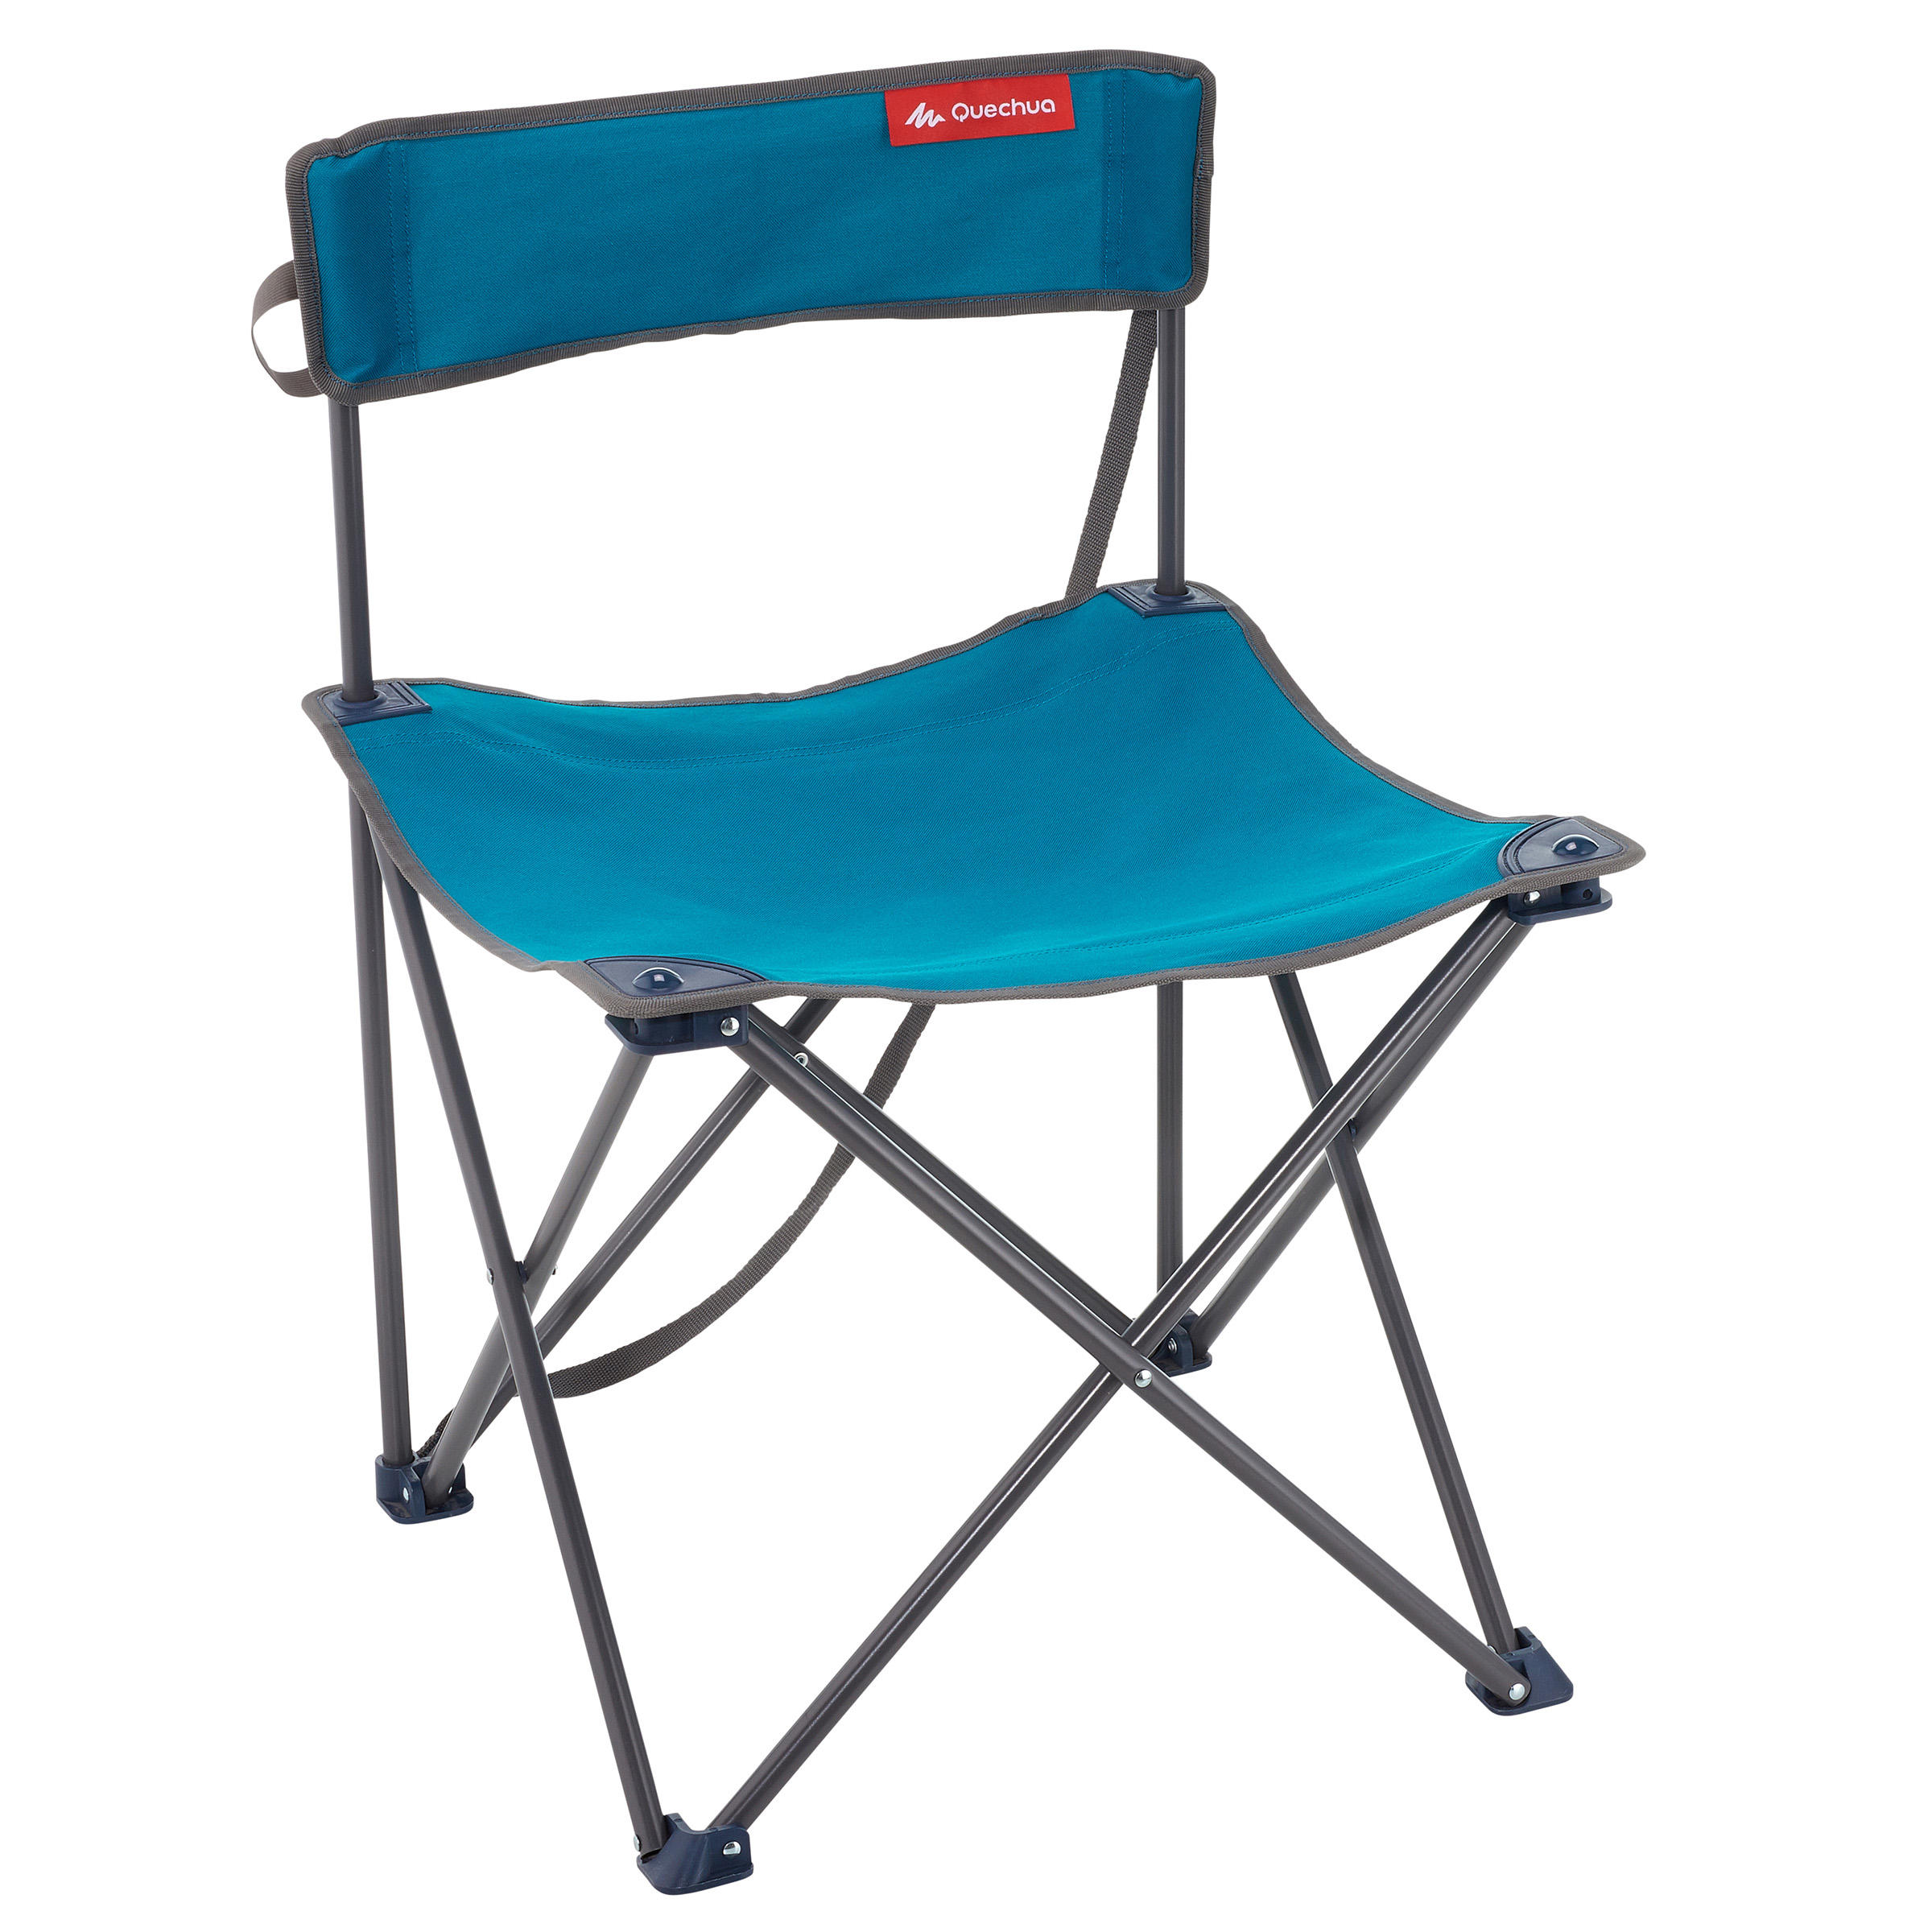 Camping/Hiking Chair - Blue